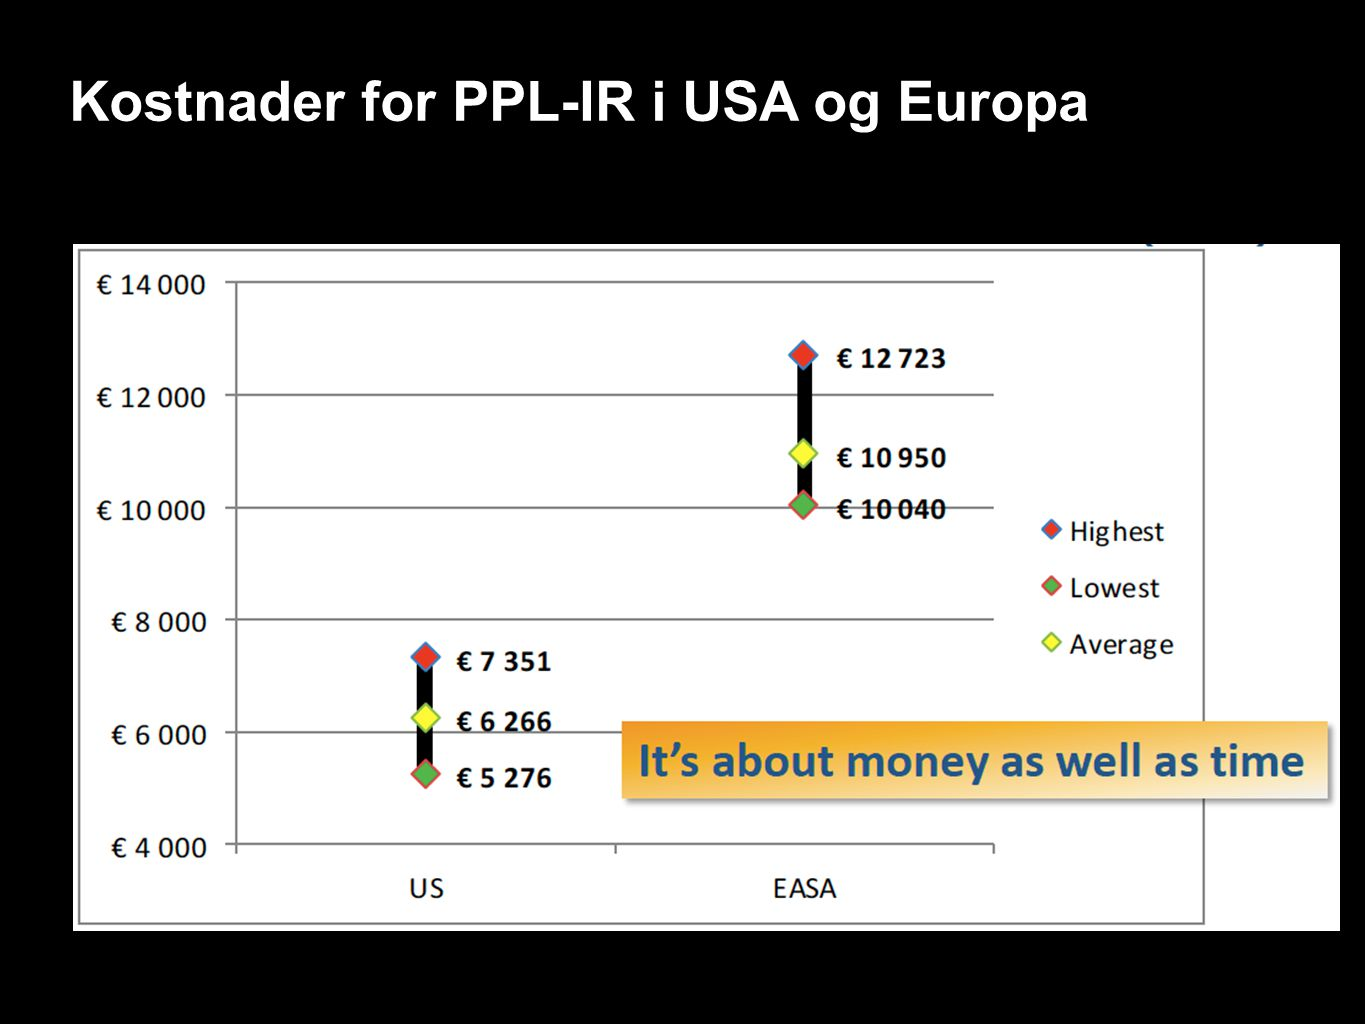 Kostnader for PPL-IR i USA og Europa